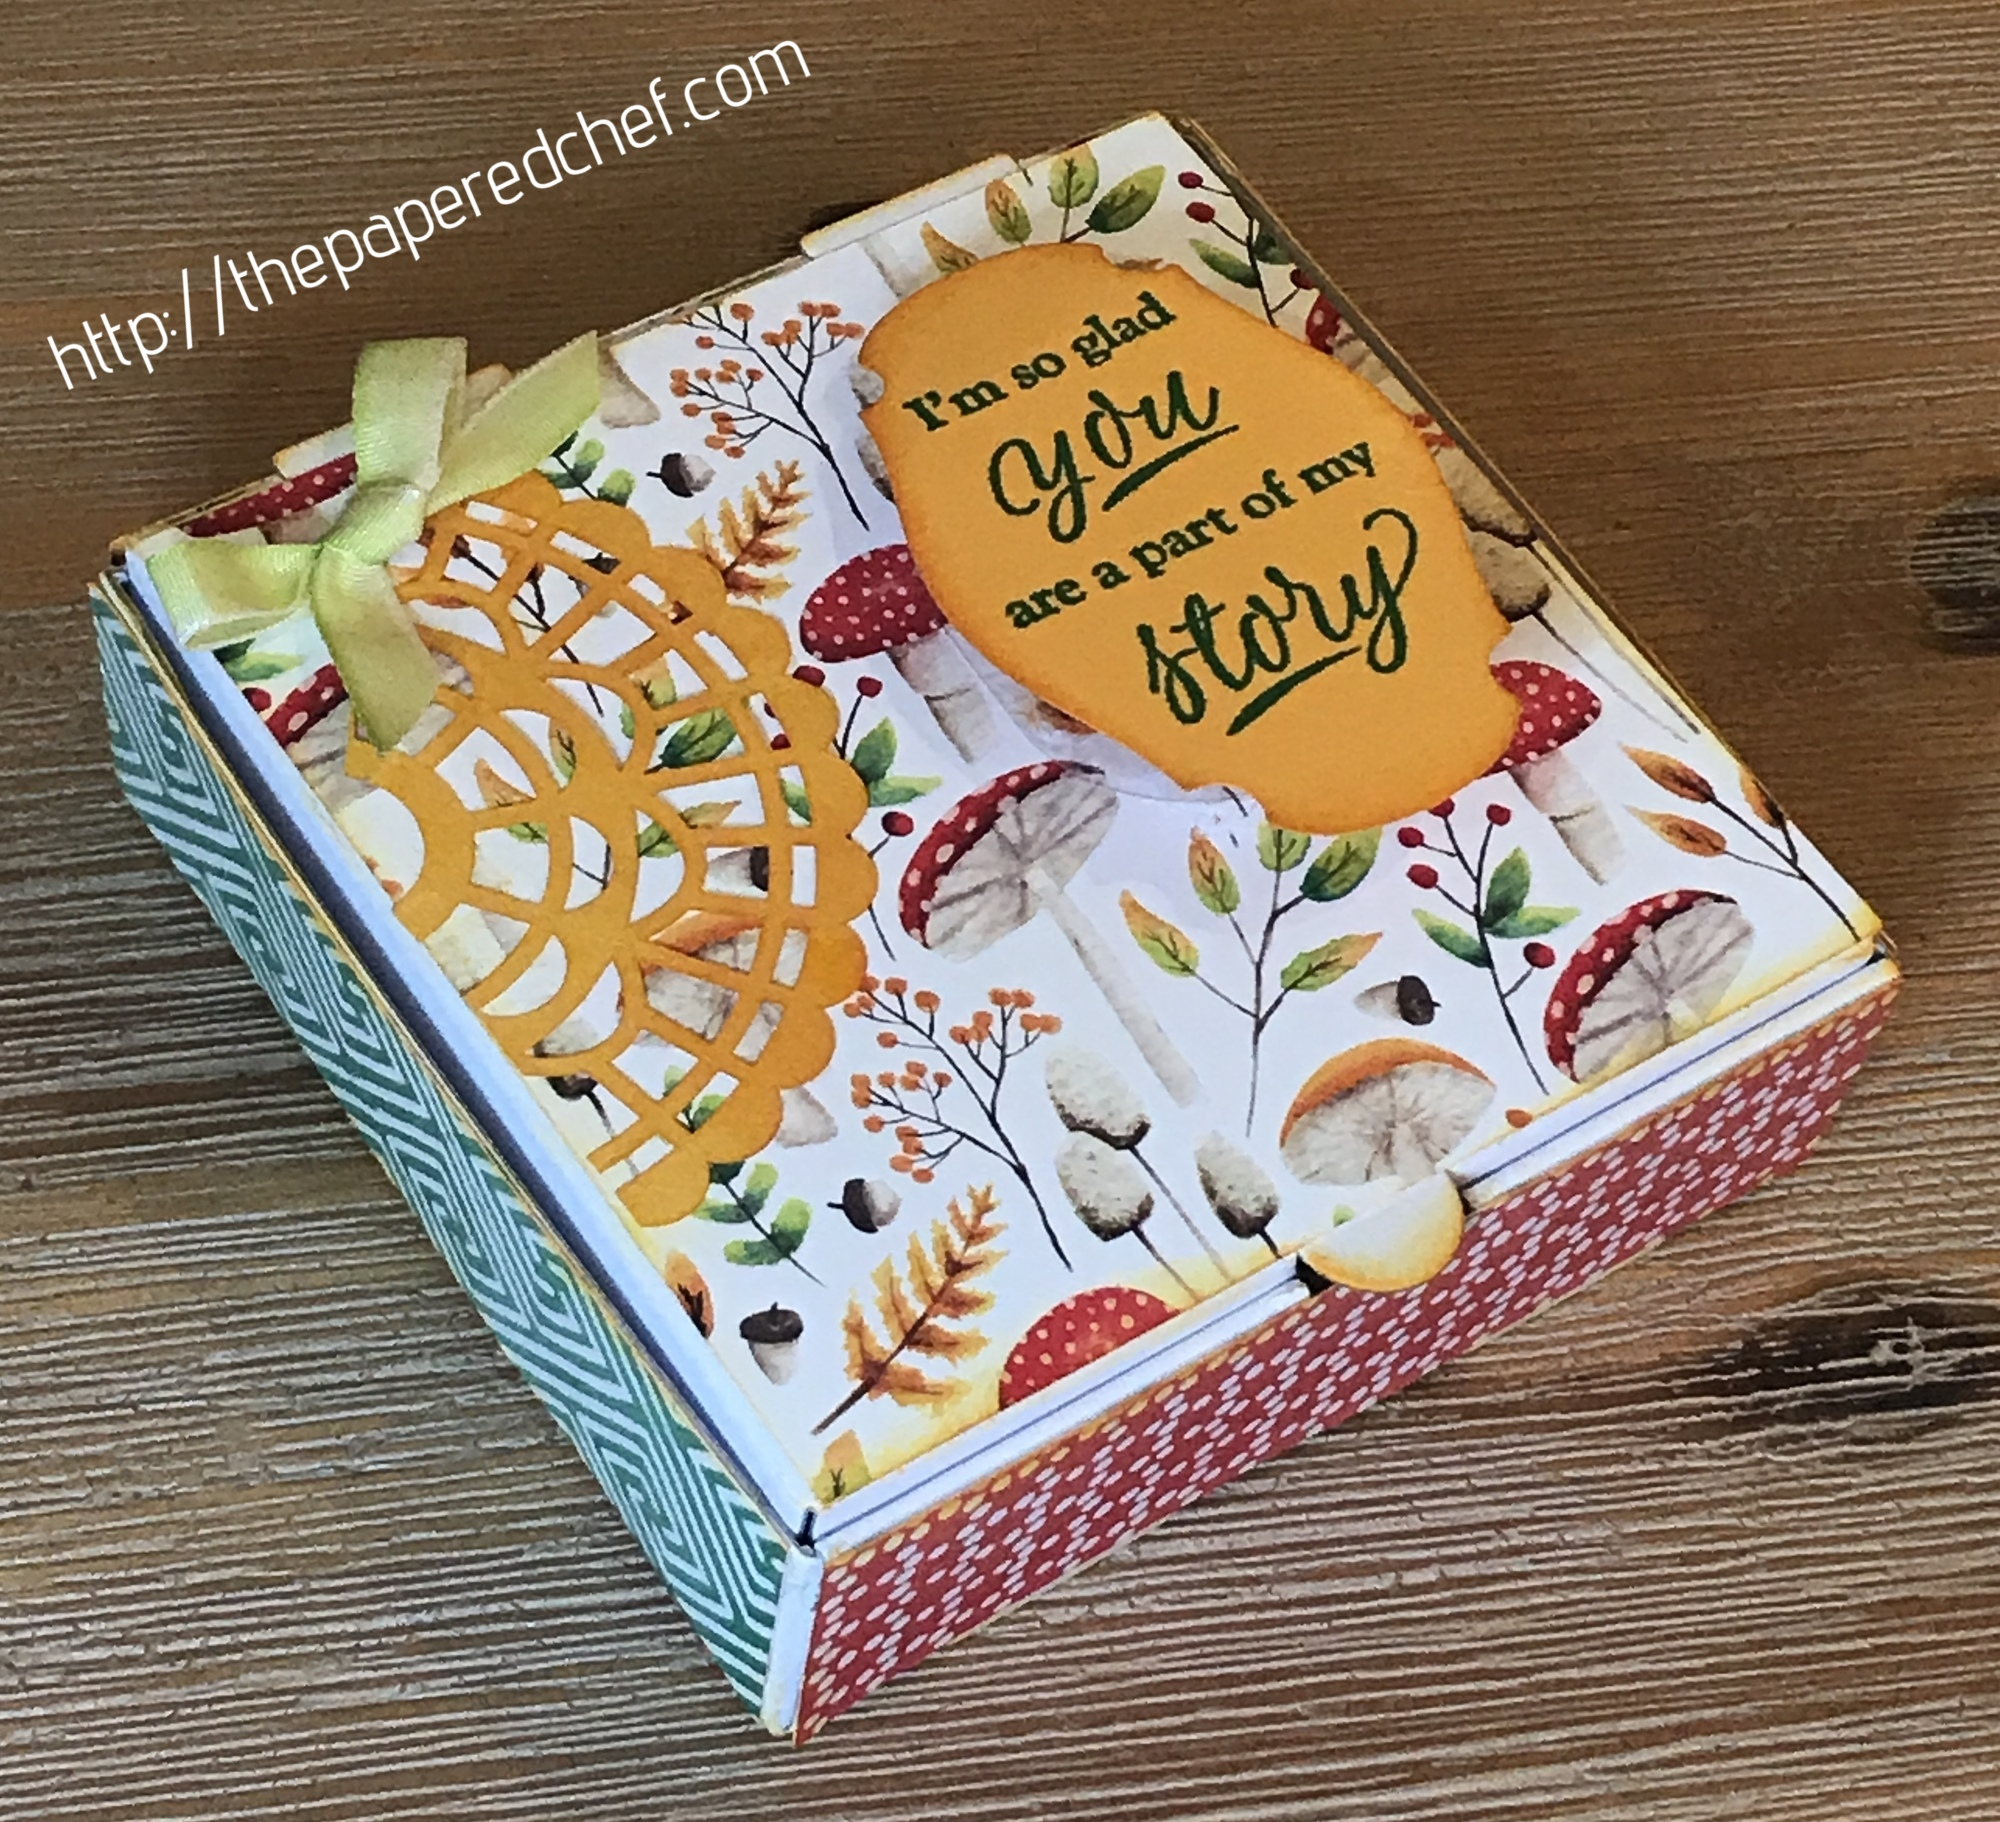 Stampin' Up! - Mini Pizza Box - Painted Seasons